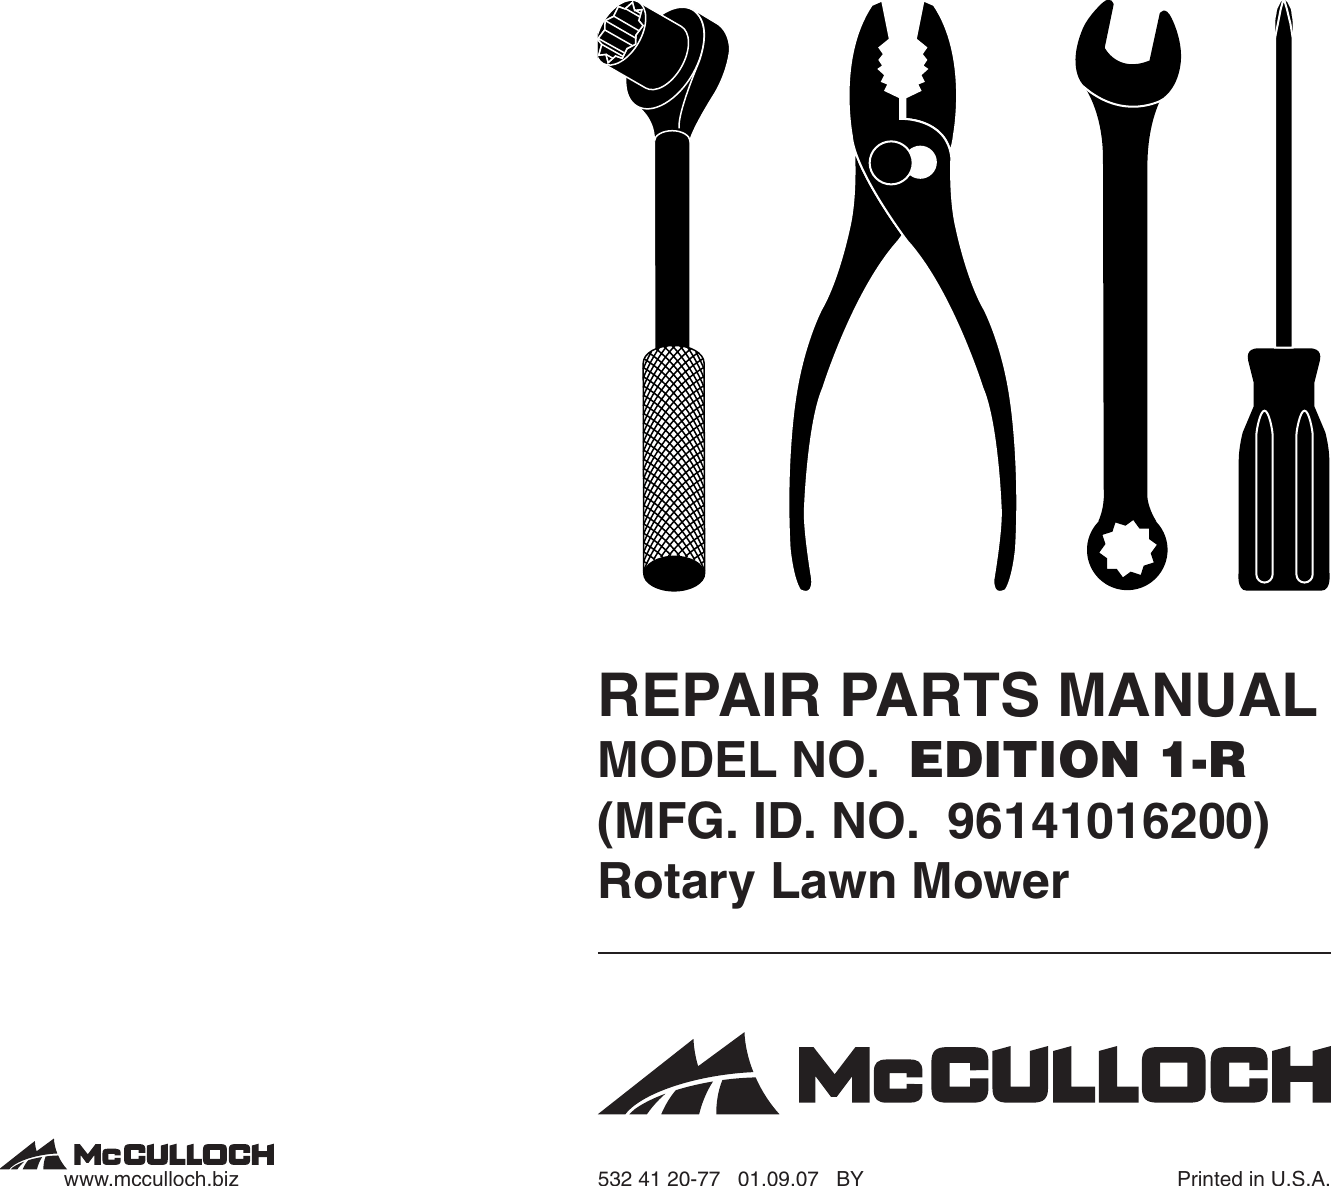 McCulloch EDITION 1 R (MFG. ID. NO. 96141016200) IPL, Mc